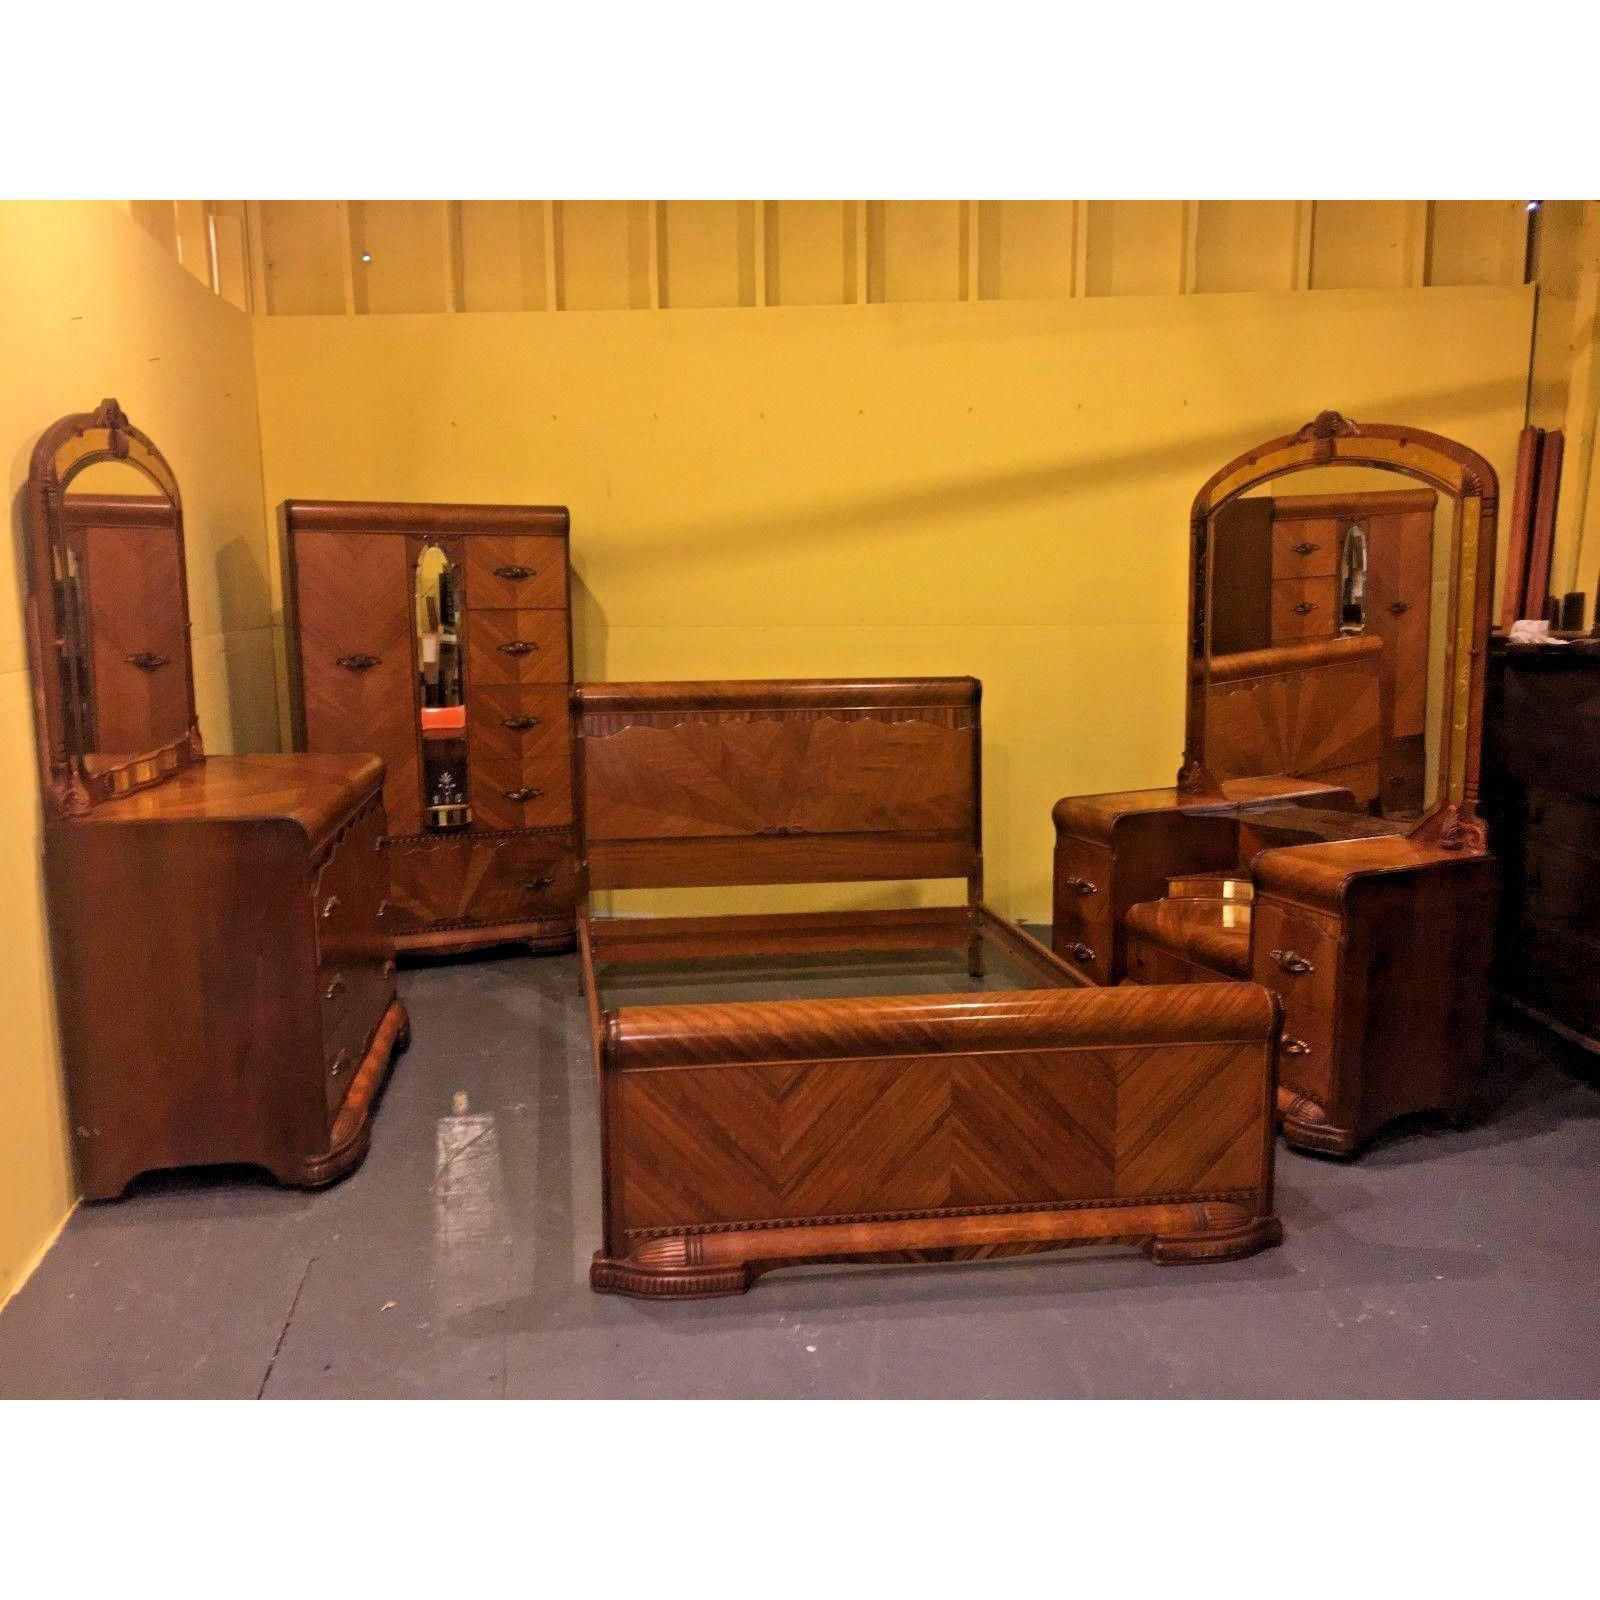 Art Deco Style Bedroom Image Of Art Deco 4 Piece Waterfall Anique Bedroom Set